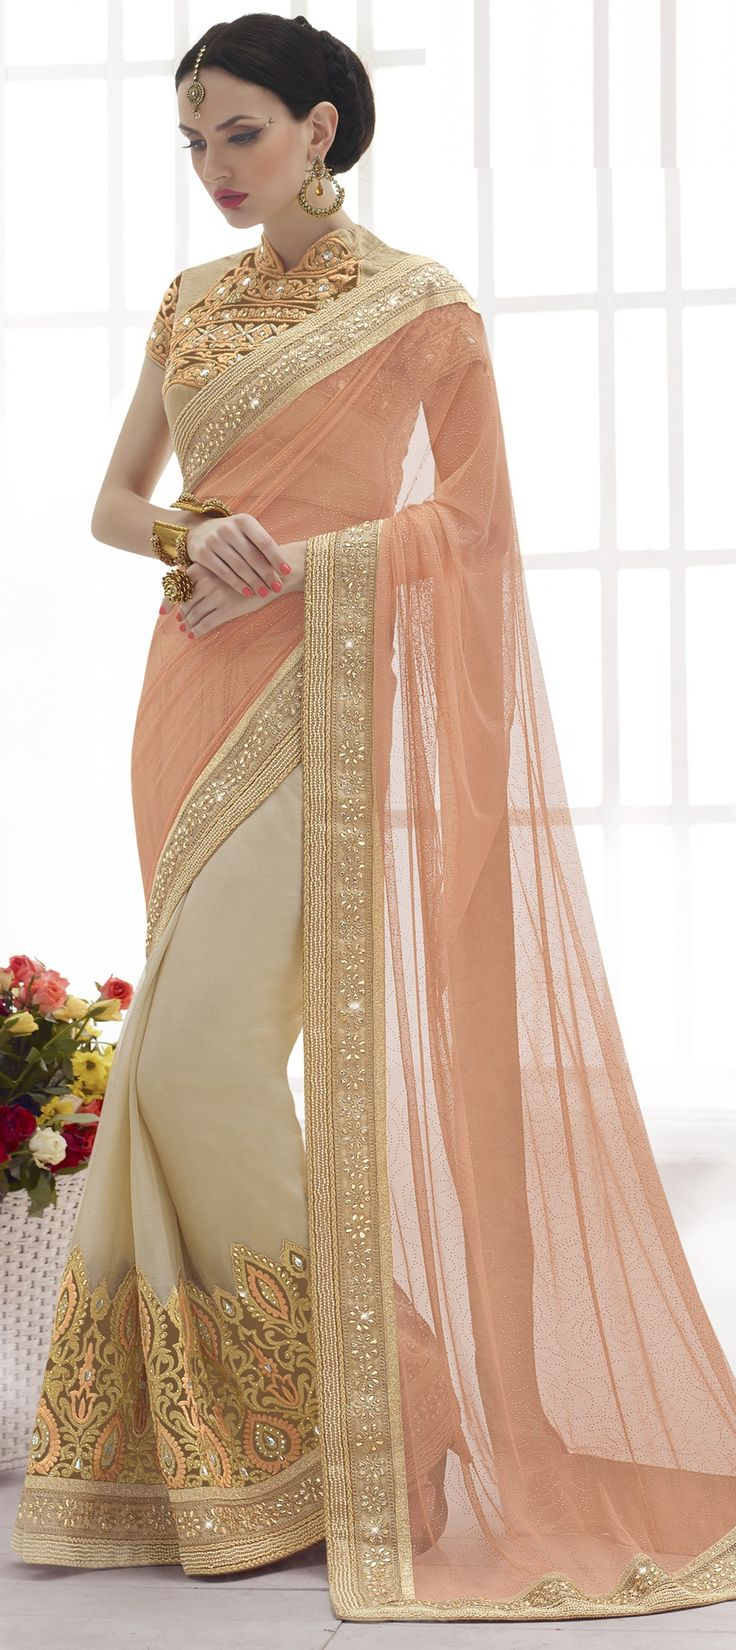 185953: Beige and Brown color family Embroidered Sarees,Party Wear Sarees with matching unstitched blouse.